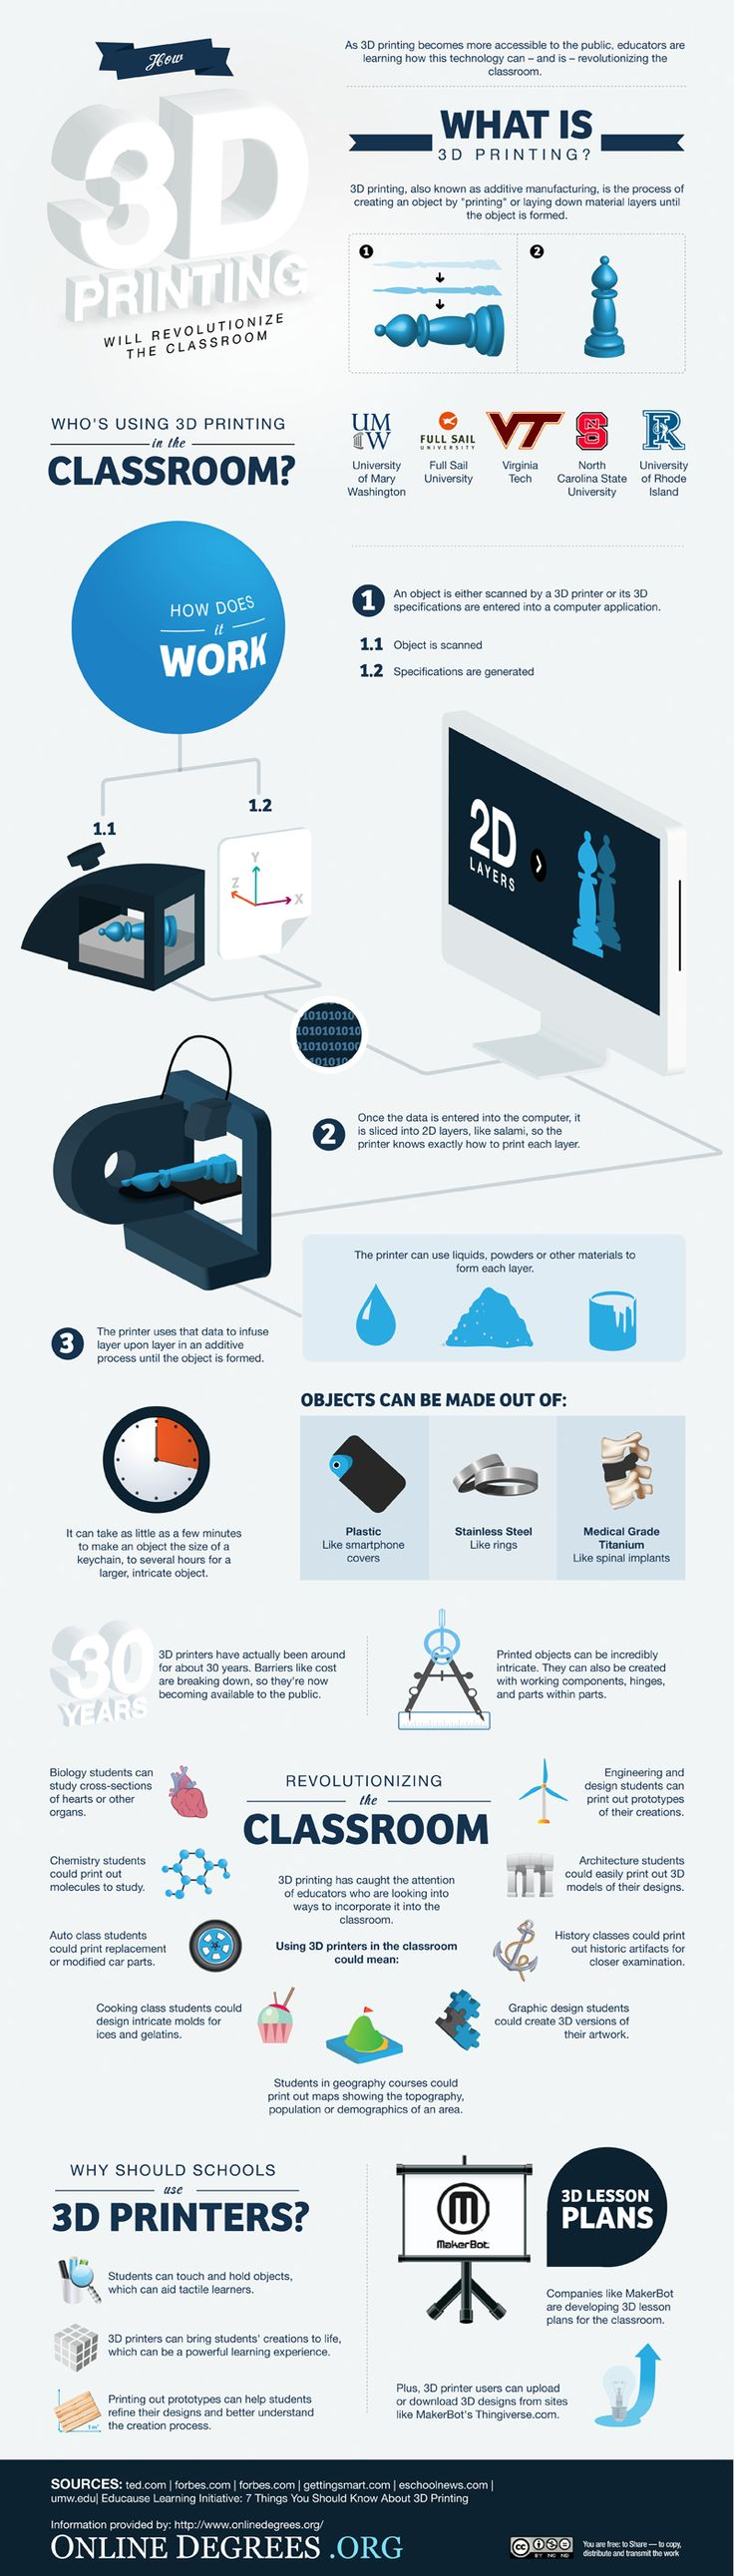 3ders.org - Inforgraphic: How 3D Printing Will Revolutionize the Classroom | 3D Printer News  3D Printing News